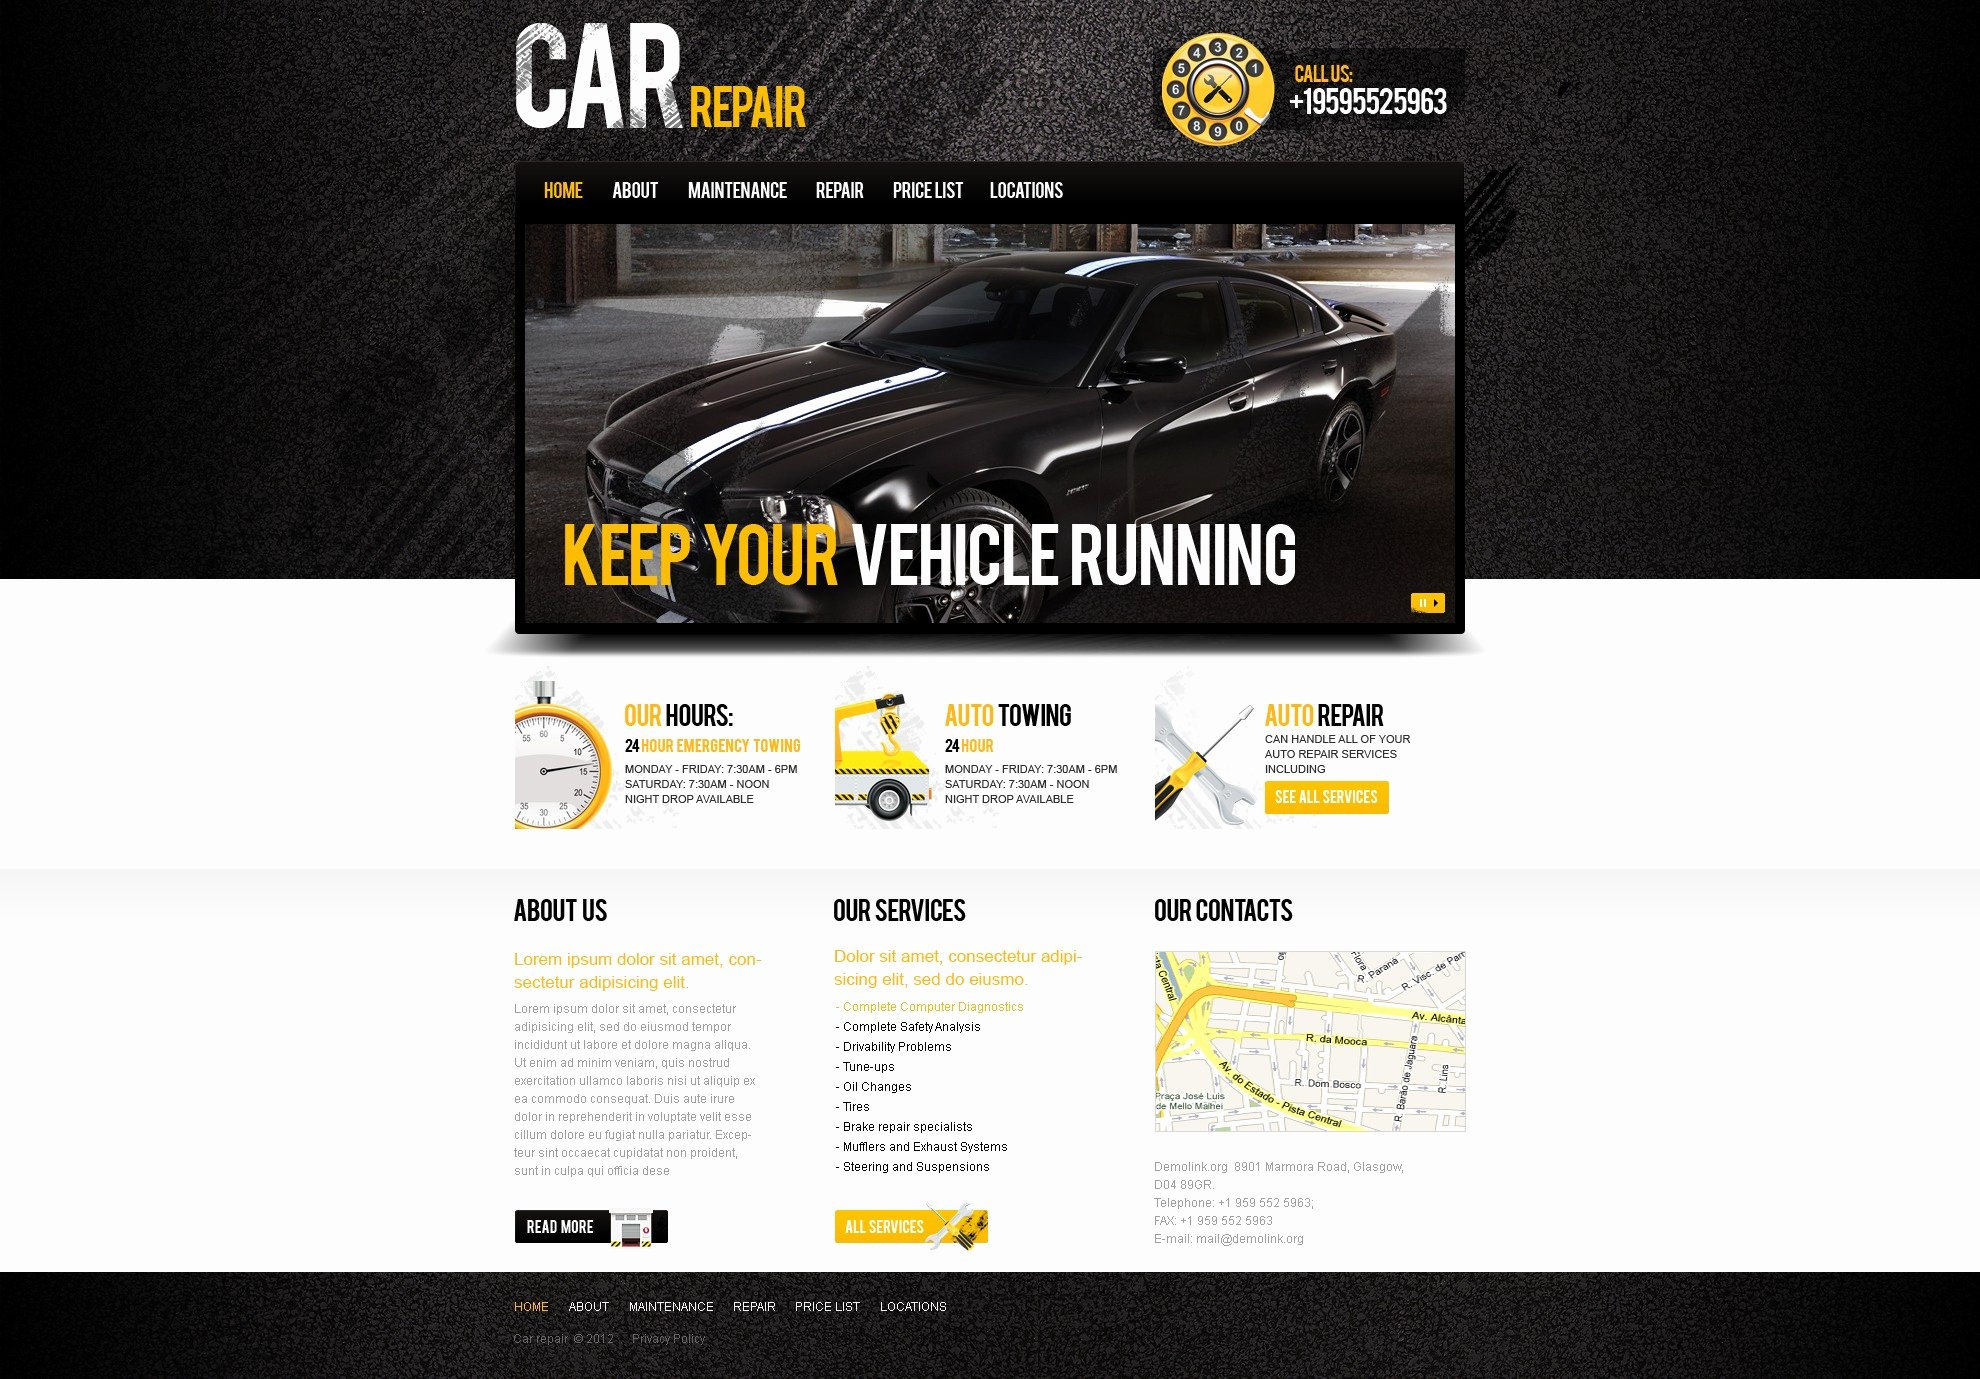 Automotive Repair Website Template Lovely Car Repair Website Template